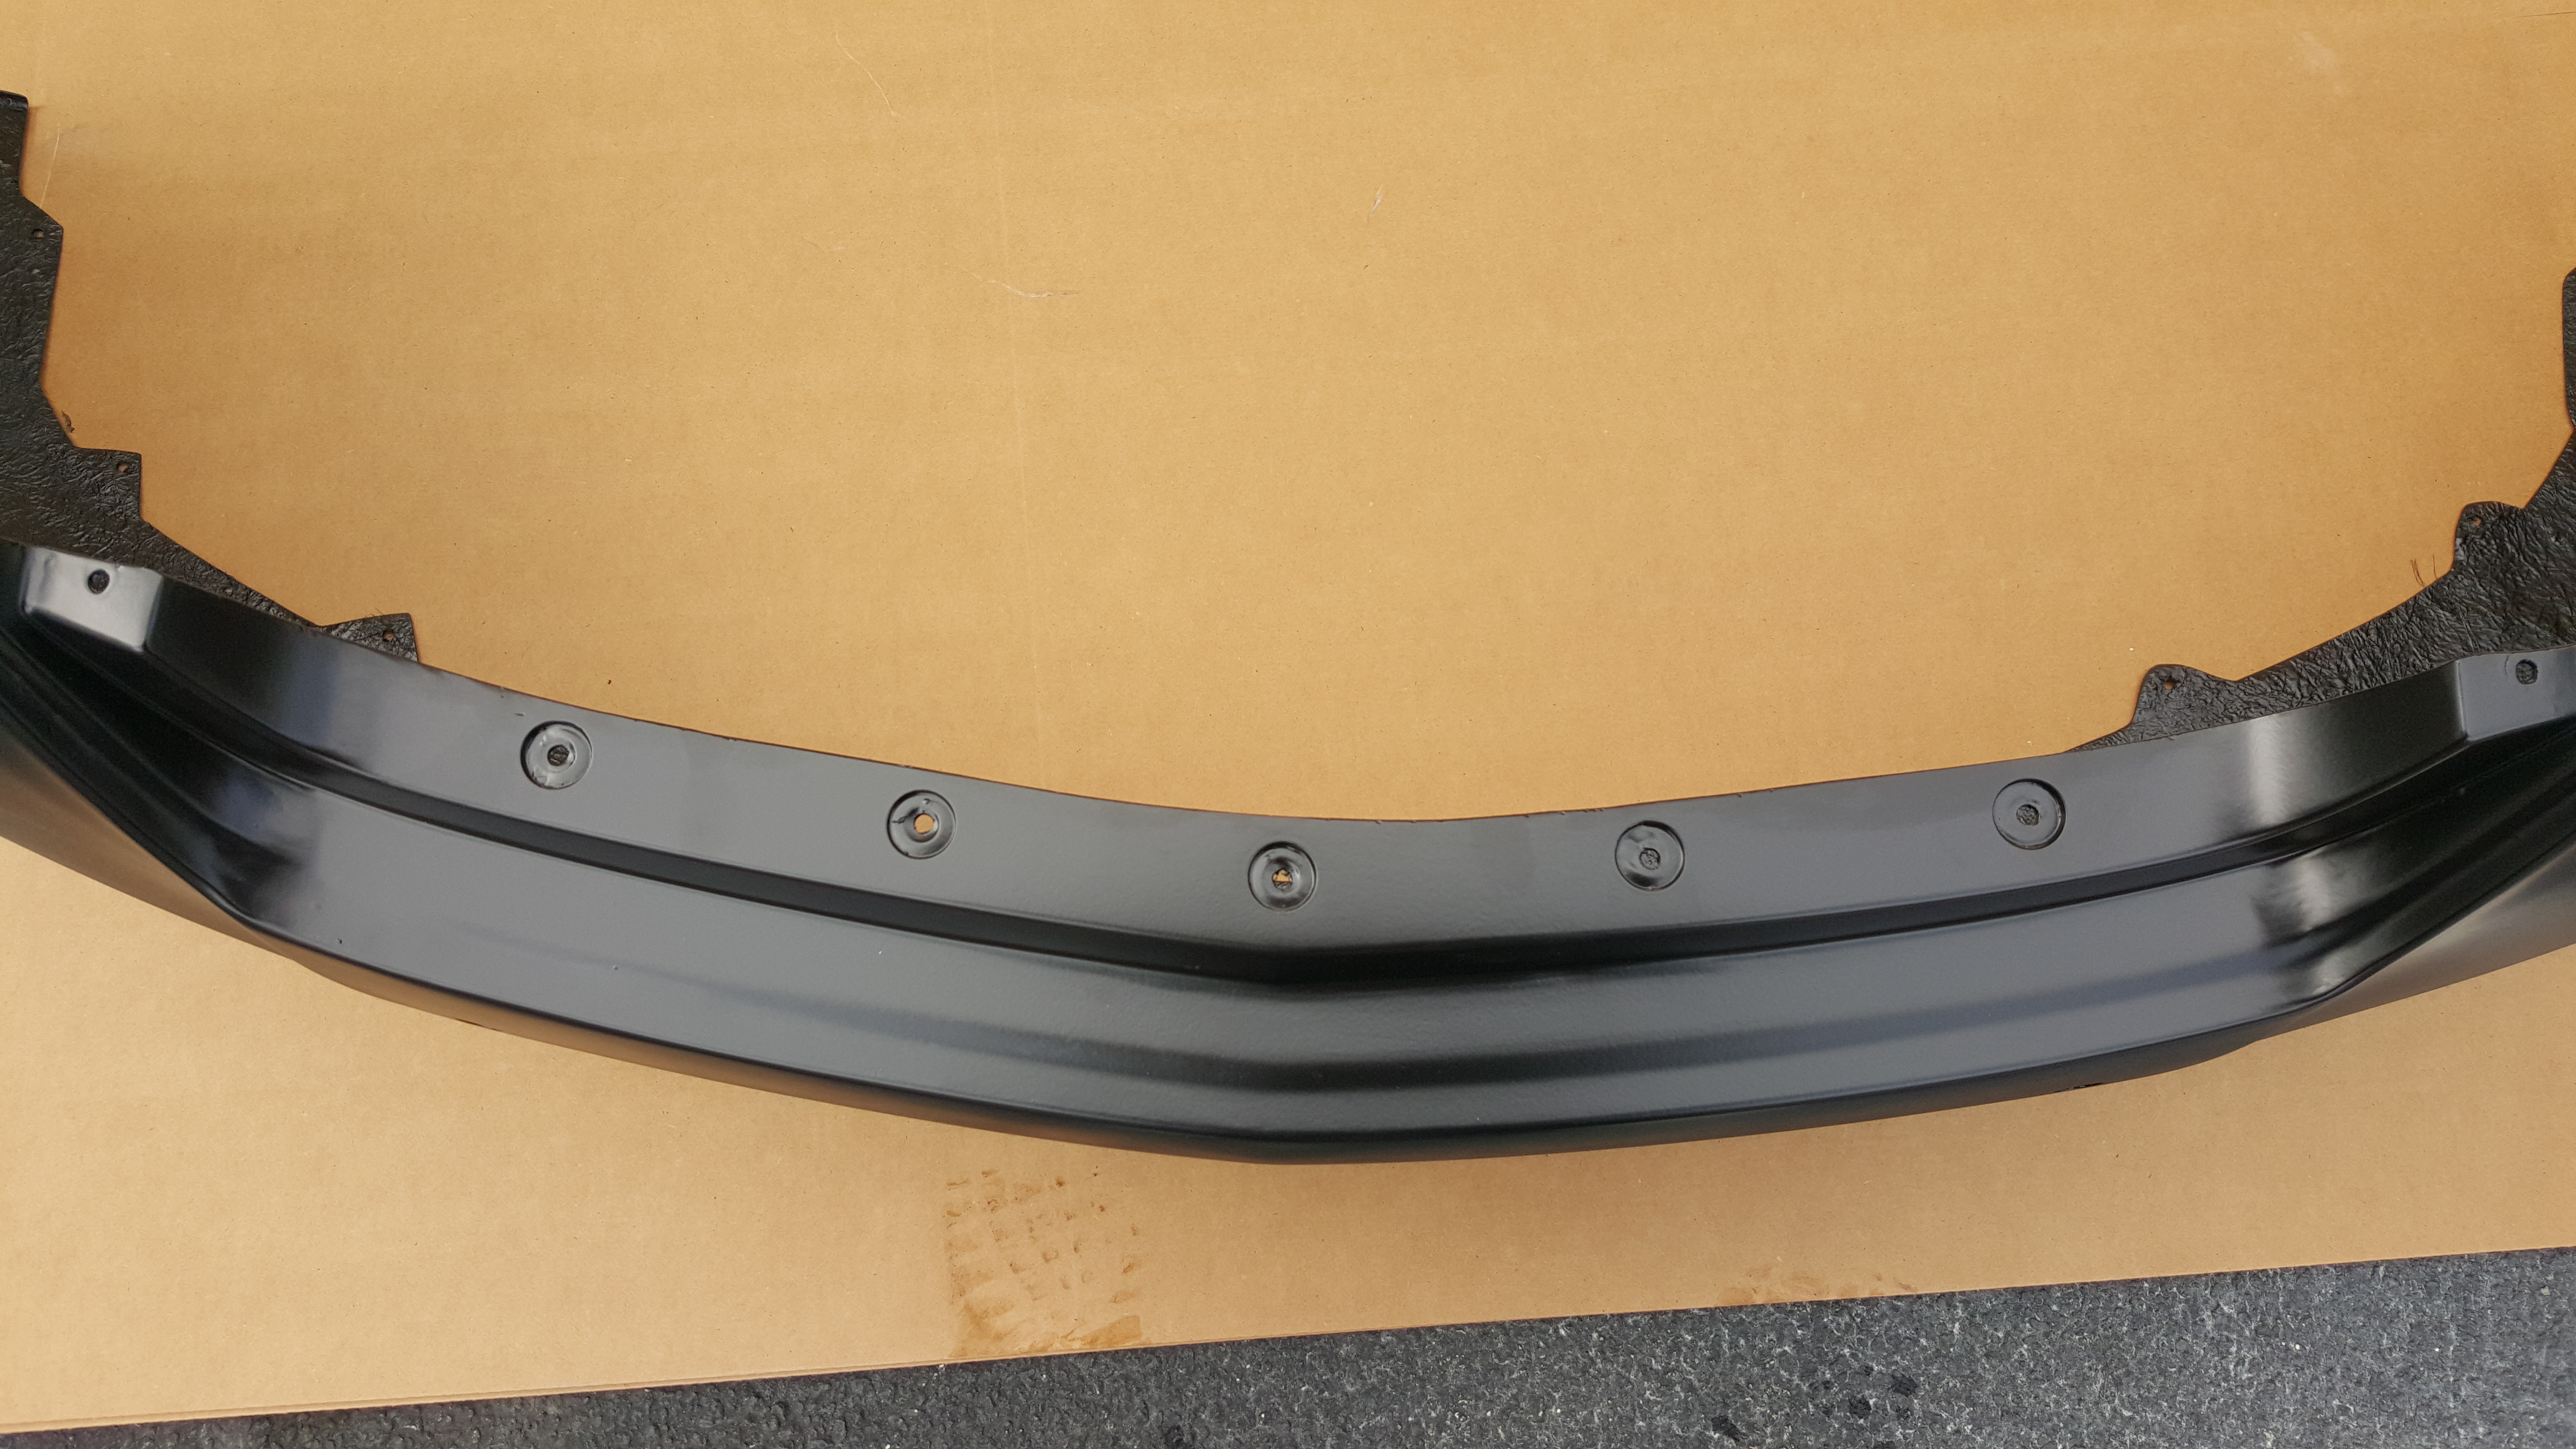 Bentley Gt Ss Style Front Bumper Cover on 2005 Bentley Continental Gt Parts